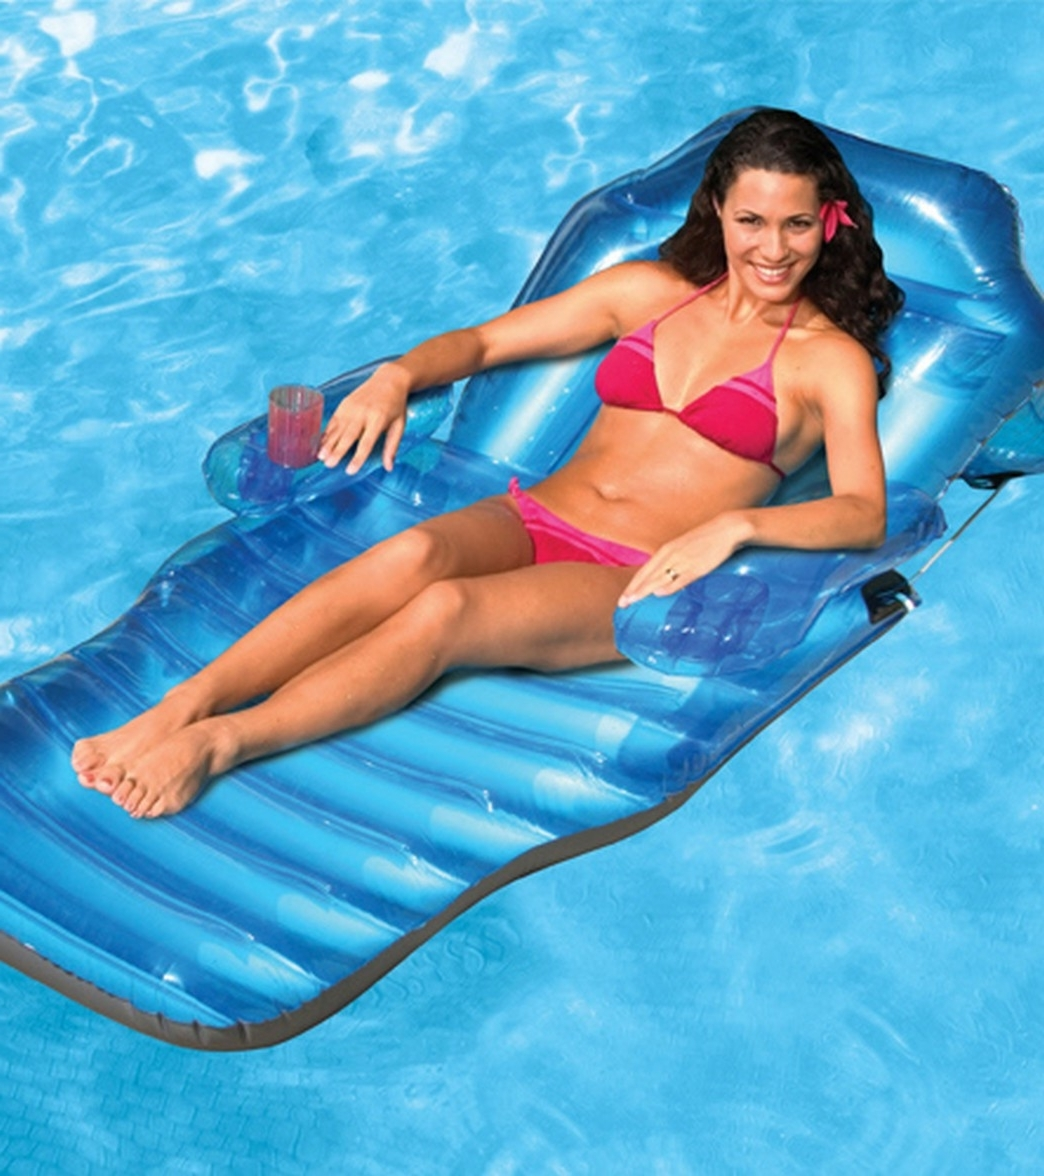 Poolmaster Adjustable Chaise Floating Pool Lounge At Swimoutlet Intended For Most Recently Released Floating Chaise Lounges (View 5 of 15)